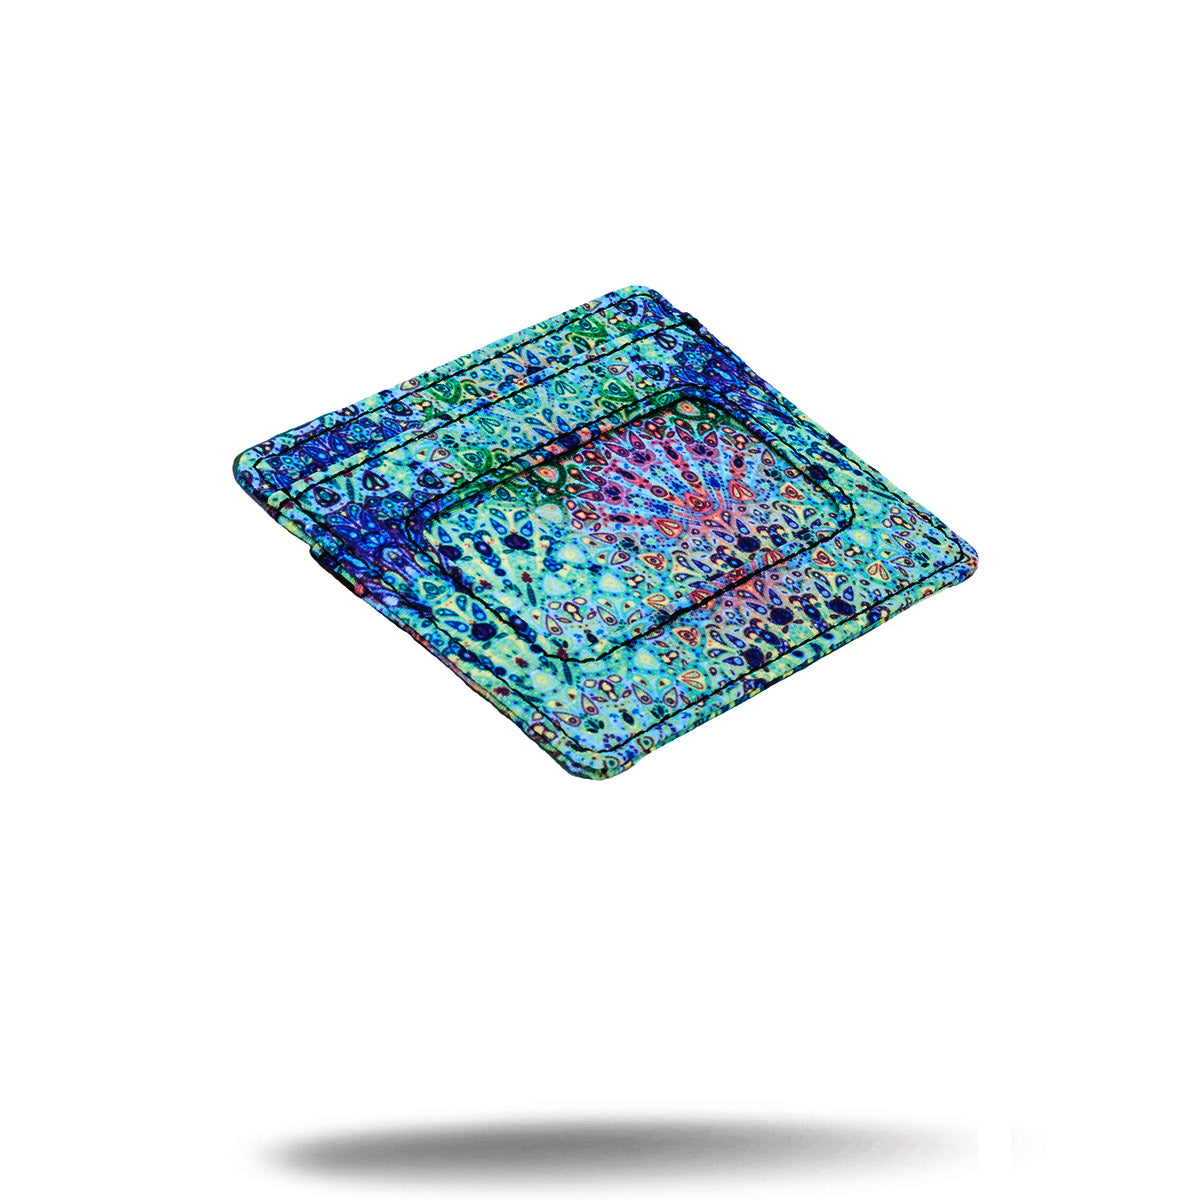 Green and blue bohemian printed credit card money holder